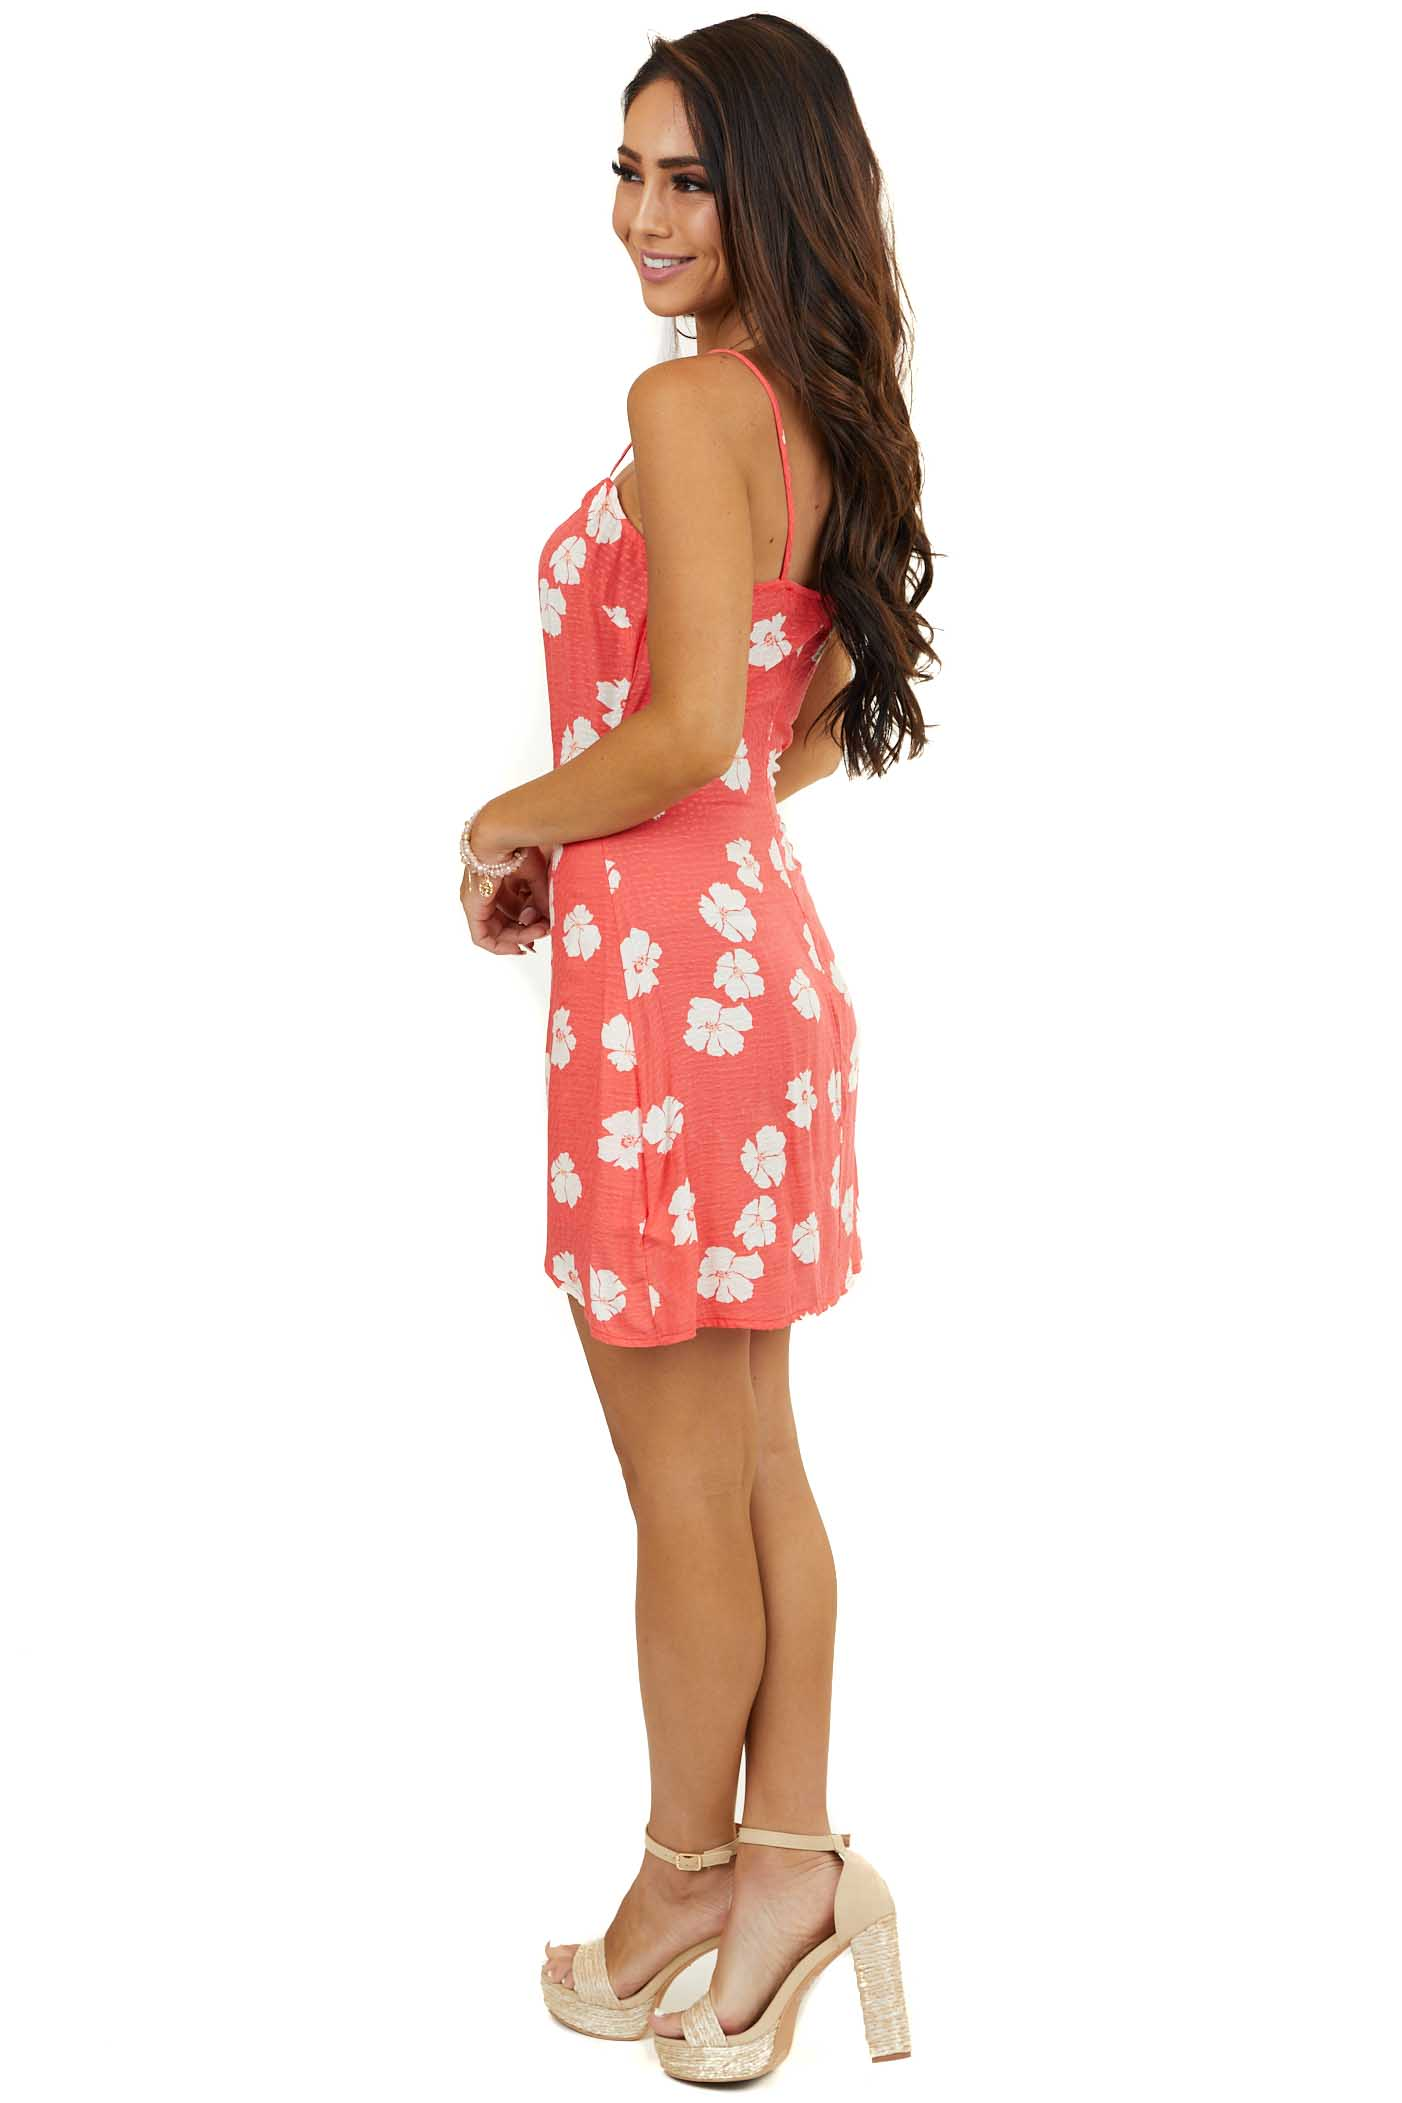 Bright Coral Floral Mini Dress with Wrap Detail and Tie